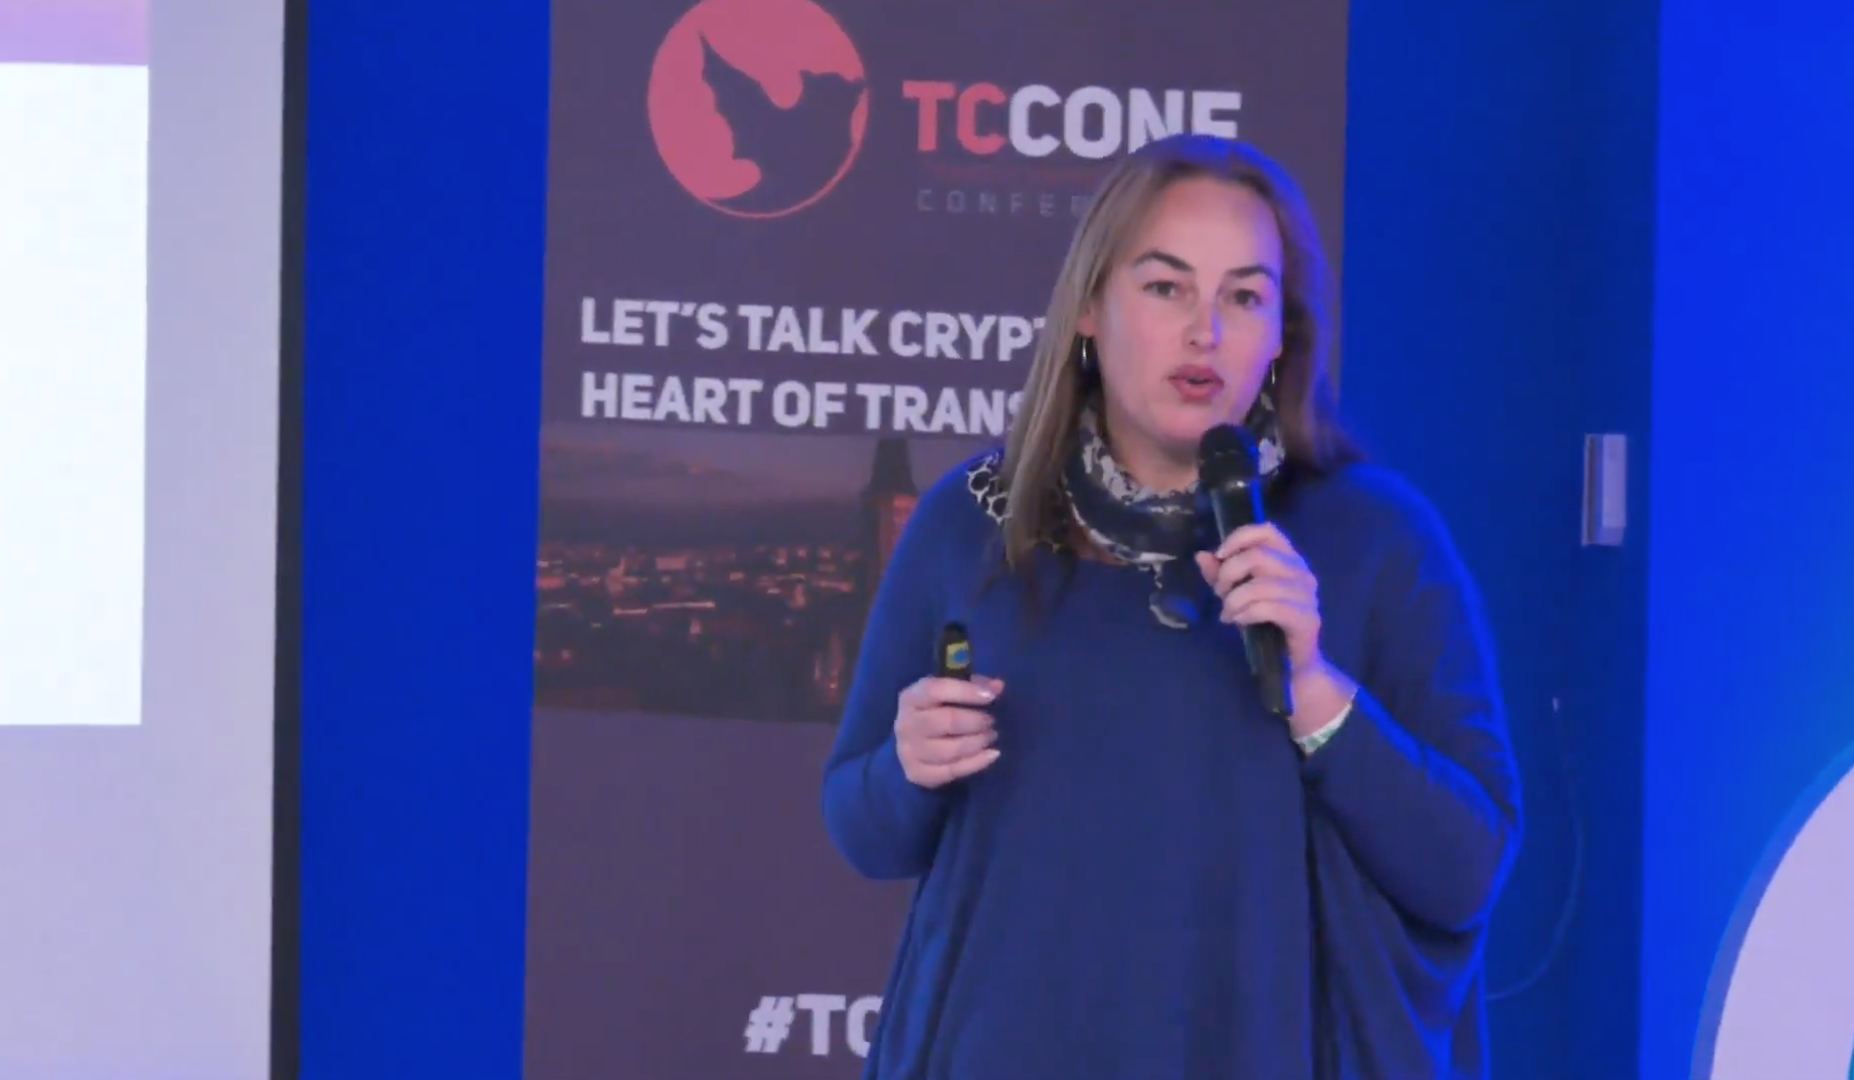 Image of Victoria Speaking at the TCCONF in Romania